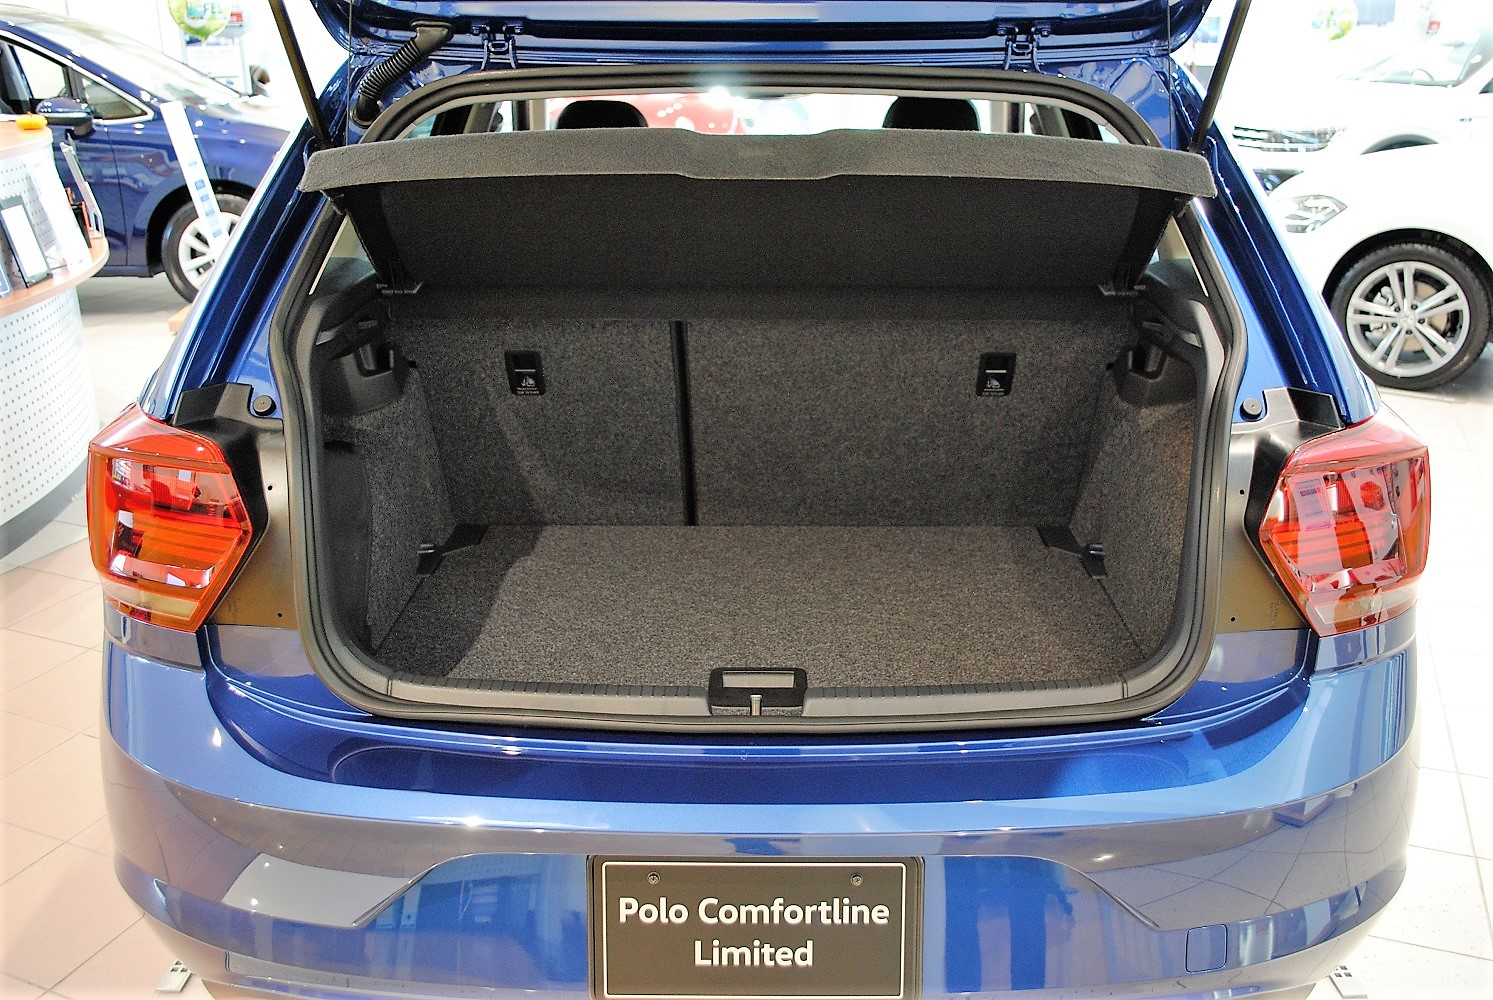 New PoloTSI Comfortline Limitedの画像3